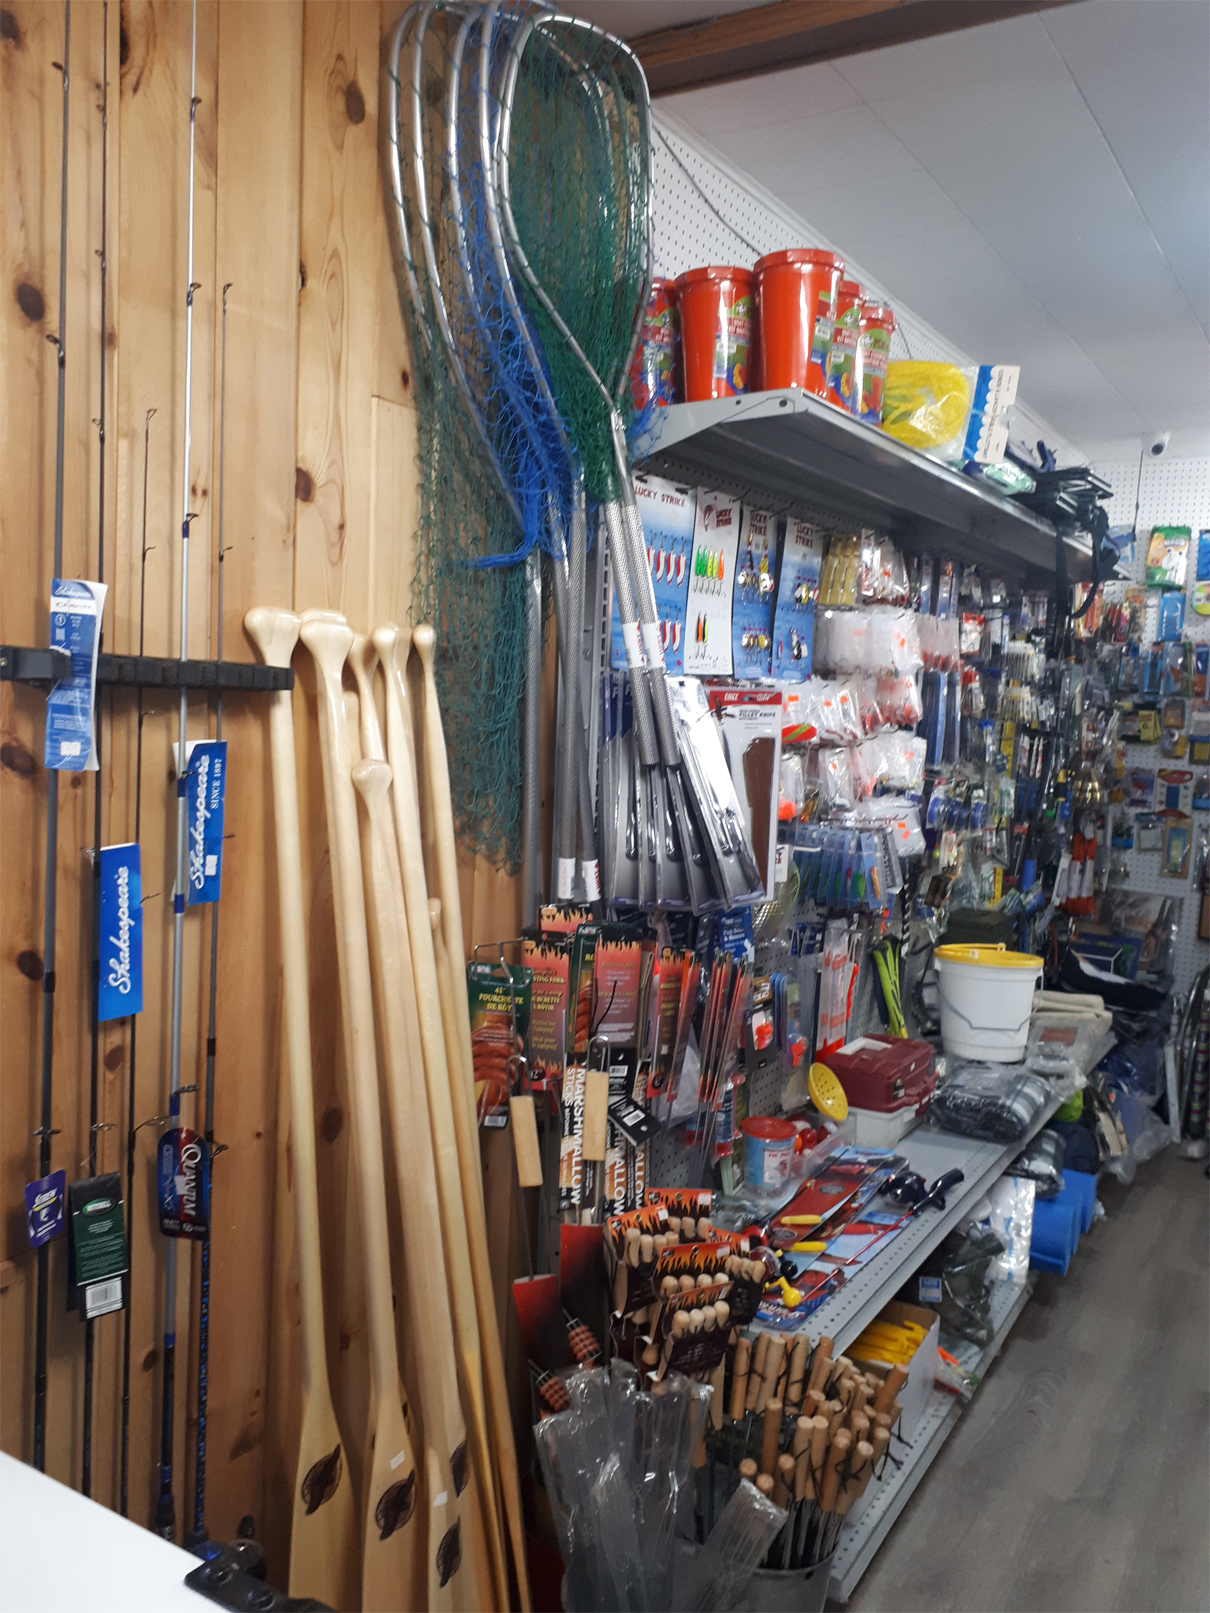 Paddles, nets, rods, lures and leaders, knives and safety gear.